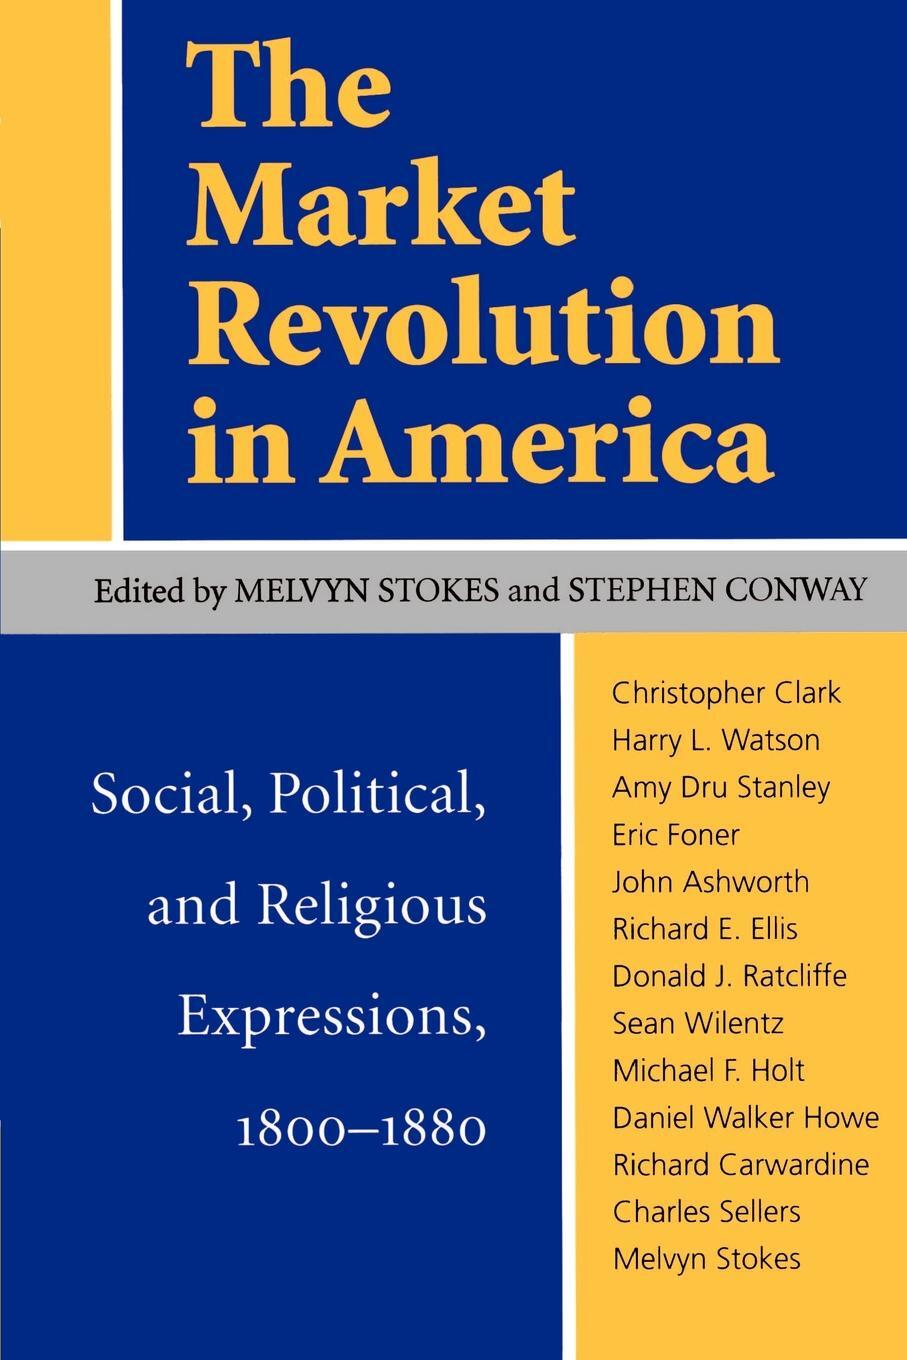 The Market Revolution in America. Social, Political, and Religious Expressions, 1800-1880